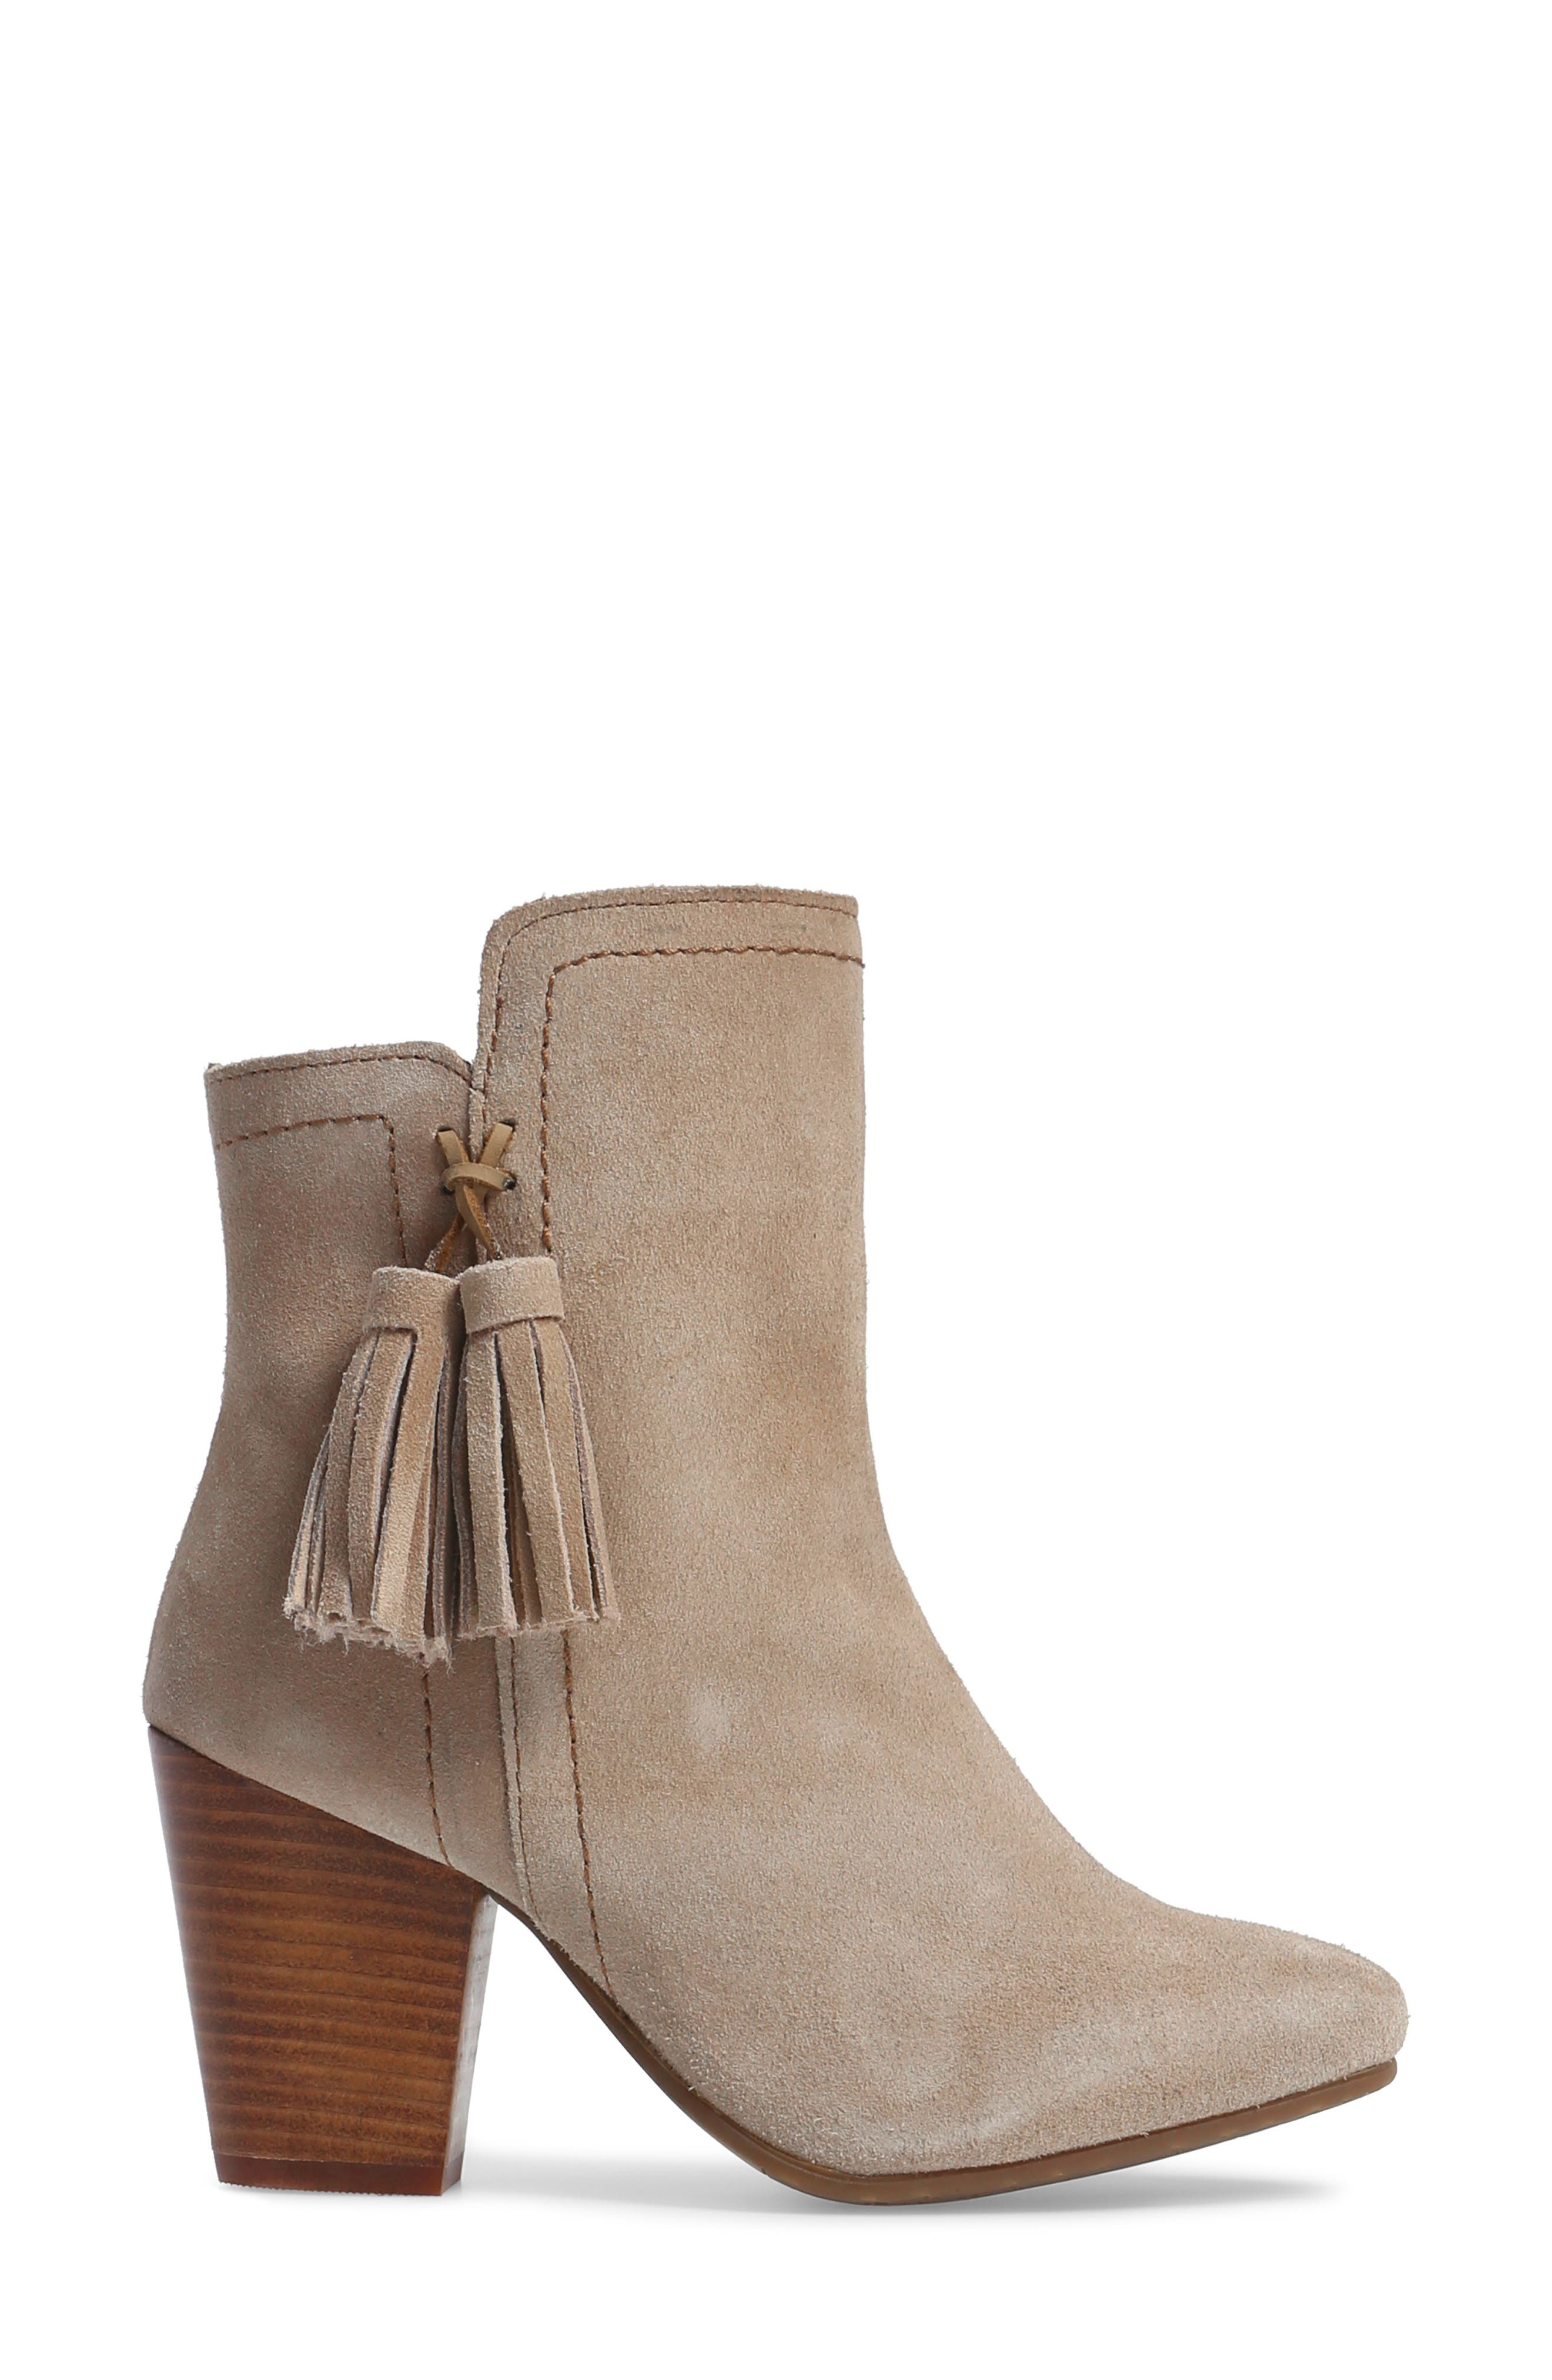 Daisee Billie Bootie,                             Alternate thumbnail 3, color,                             Taupe Suede